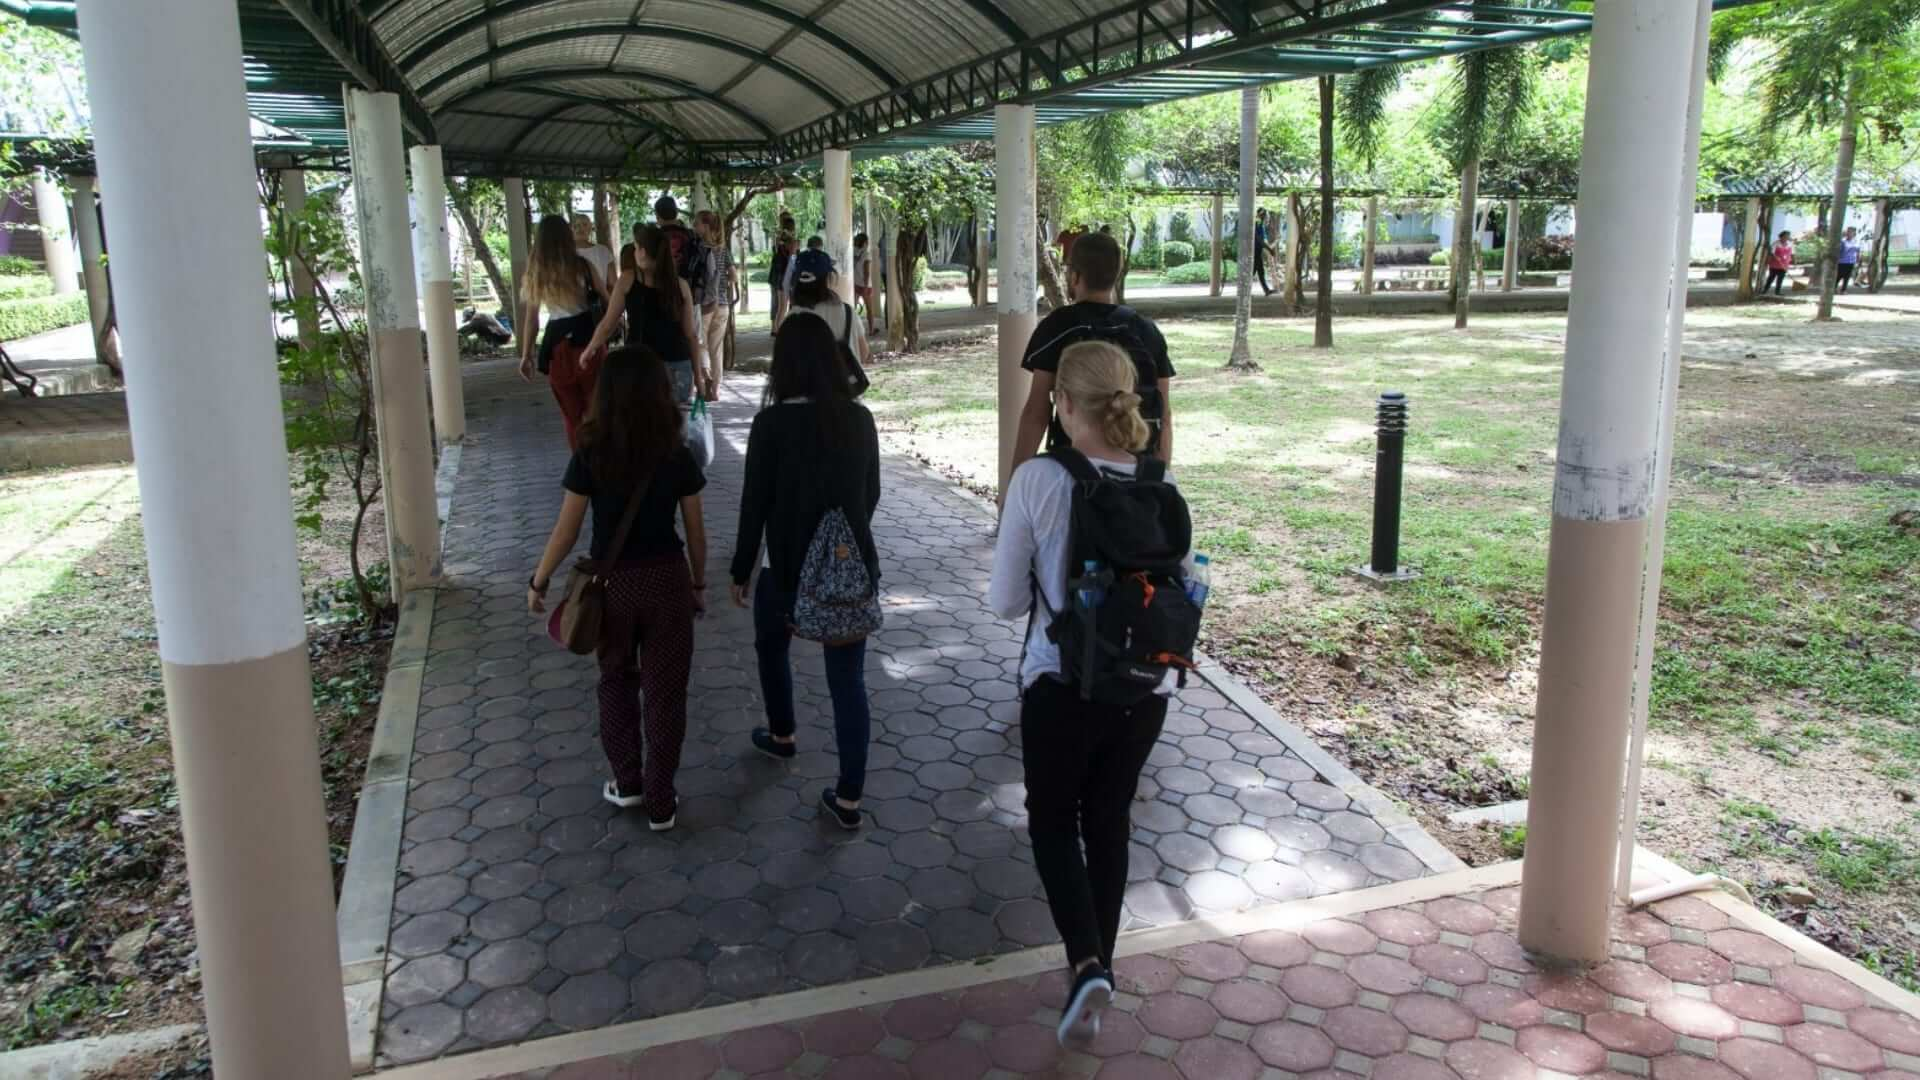 Students are walking on a covered path to school in Thailand.